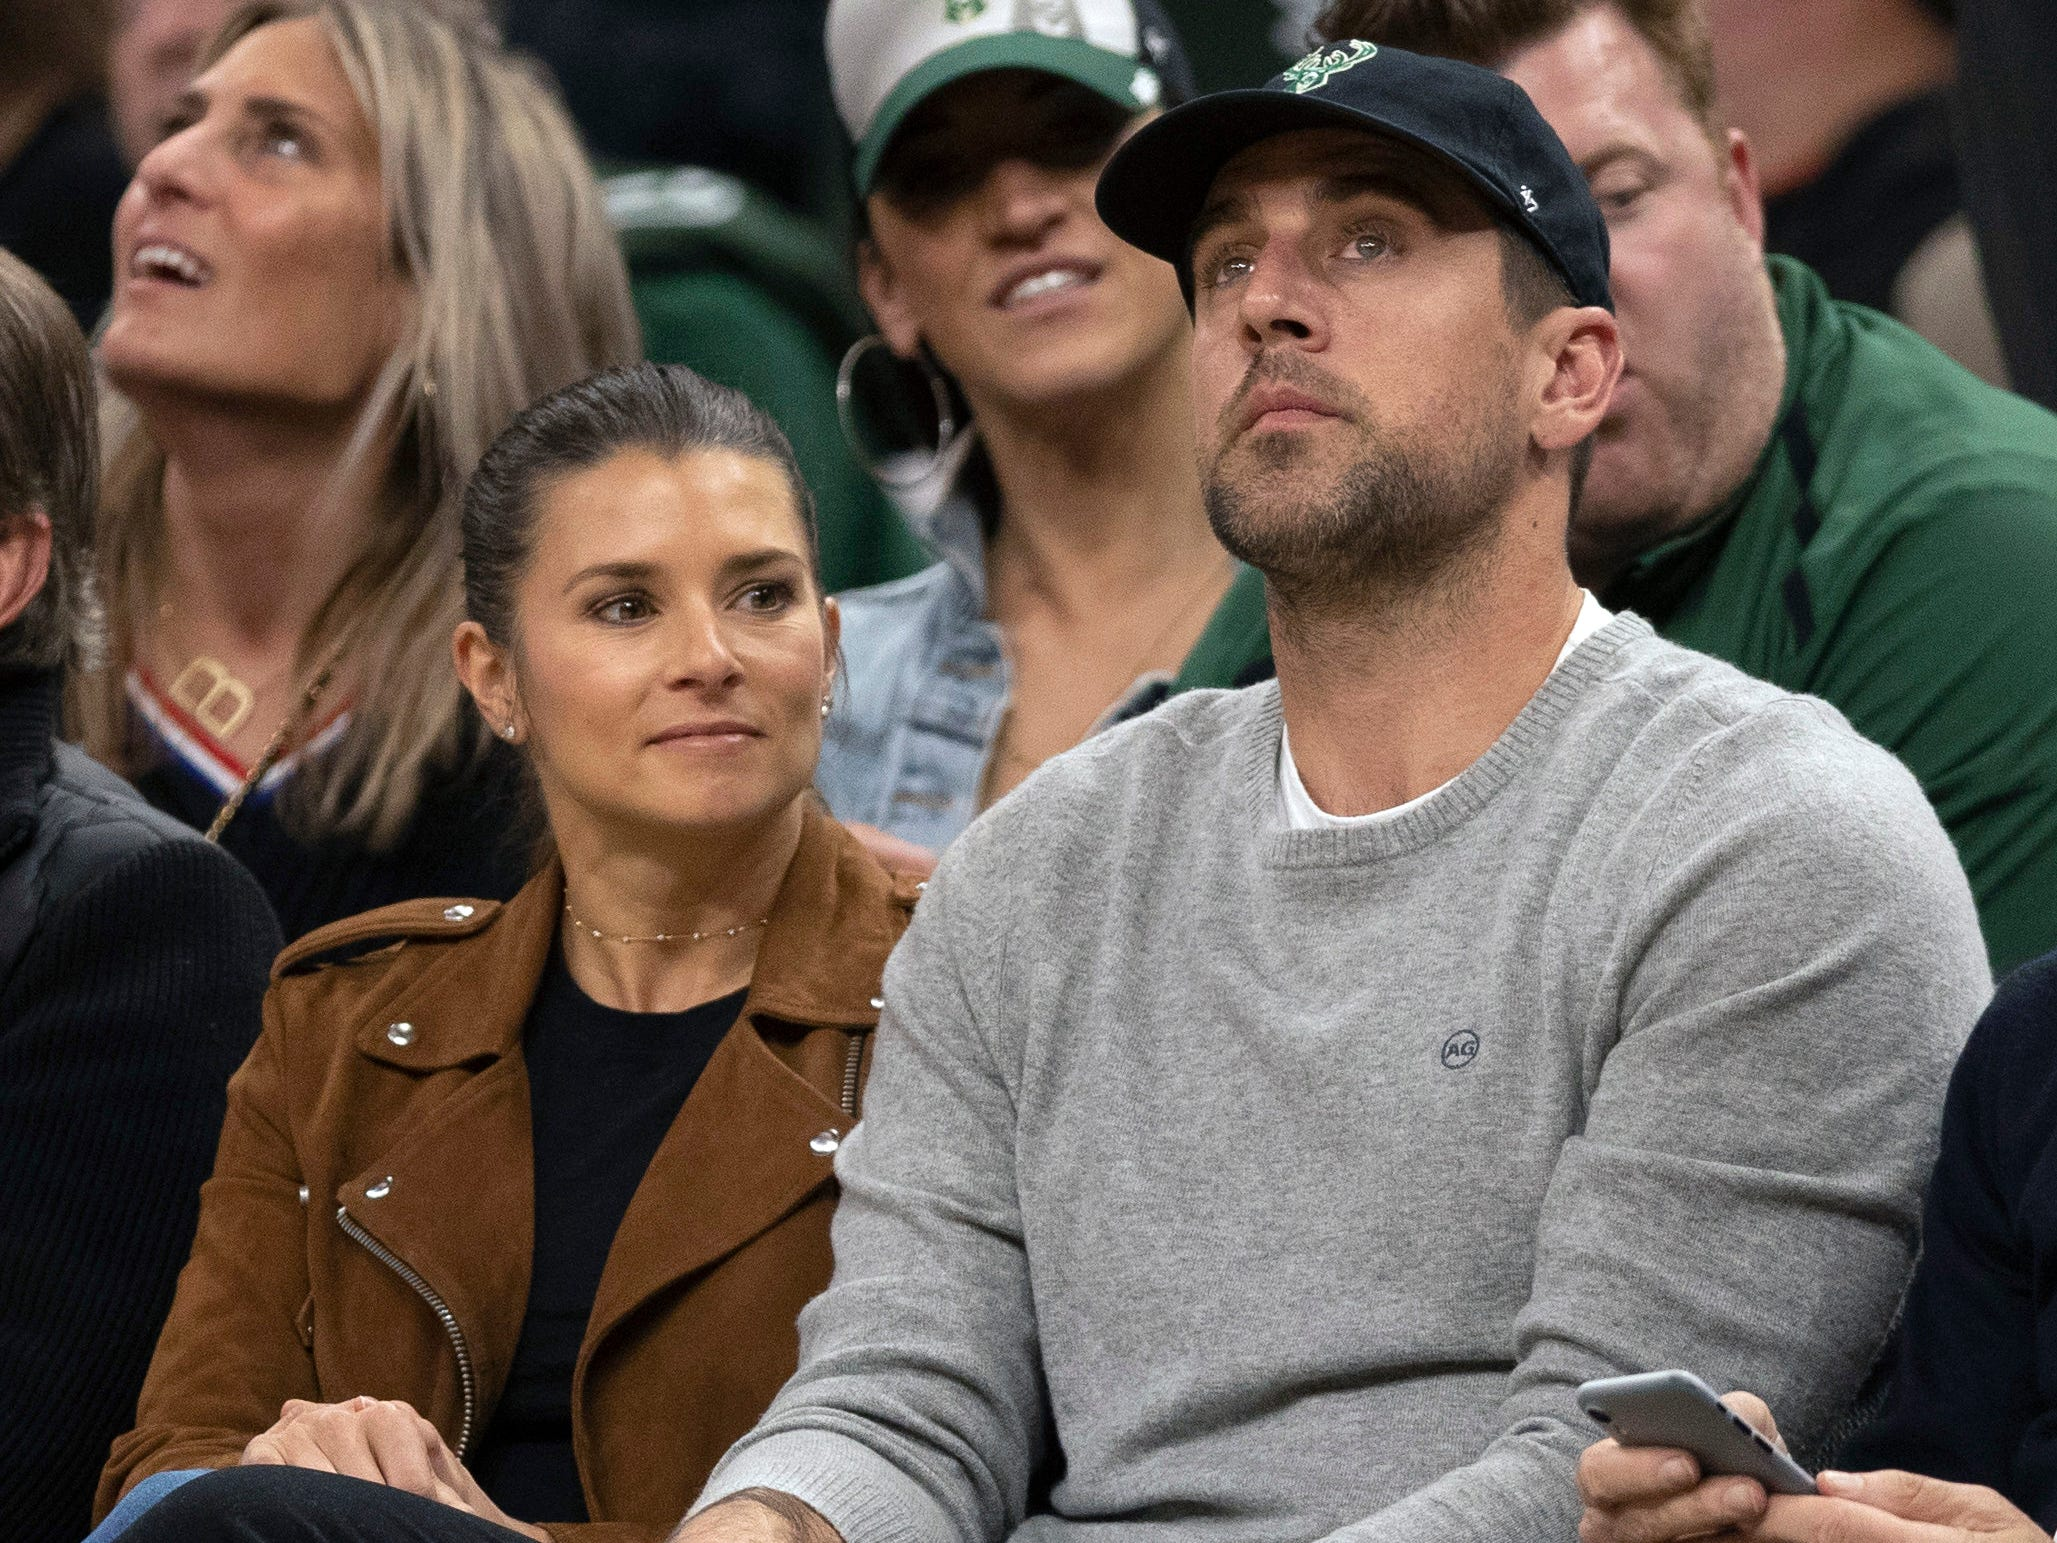 April 17: Danica Patrick and Aaron Rodgers look on during the fourth quarter of Game 2 between the Pistons and Bucks in Milwaukee.